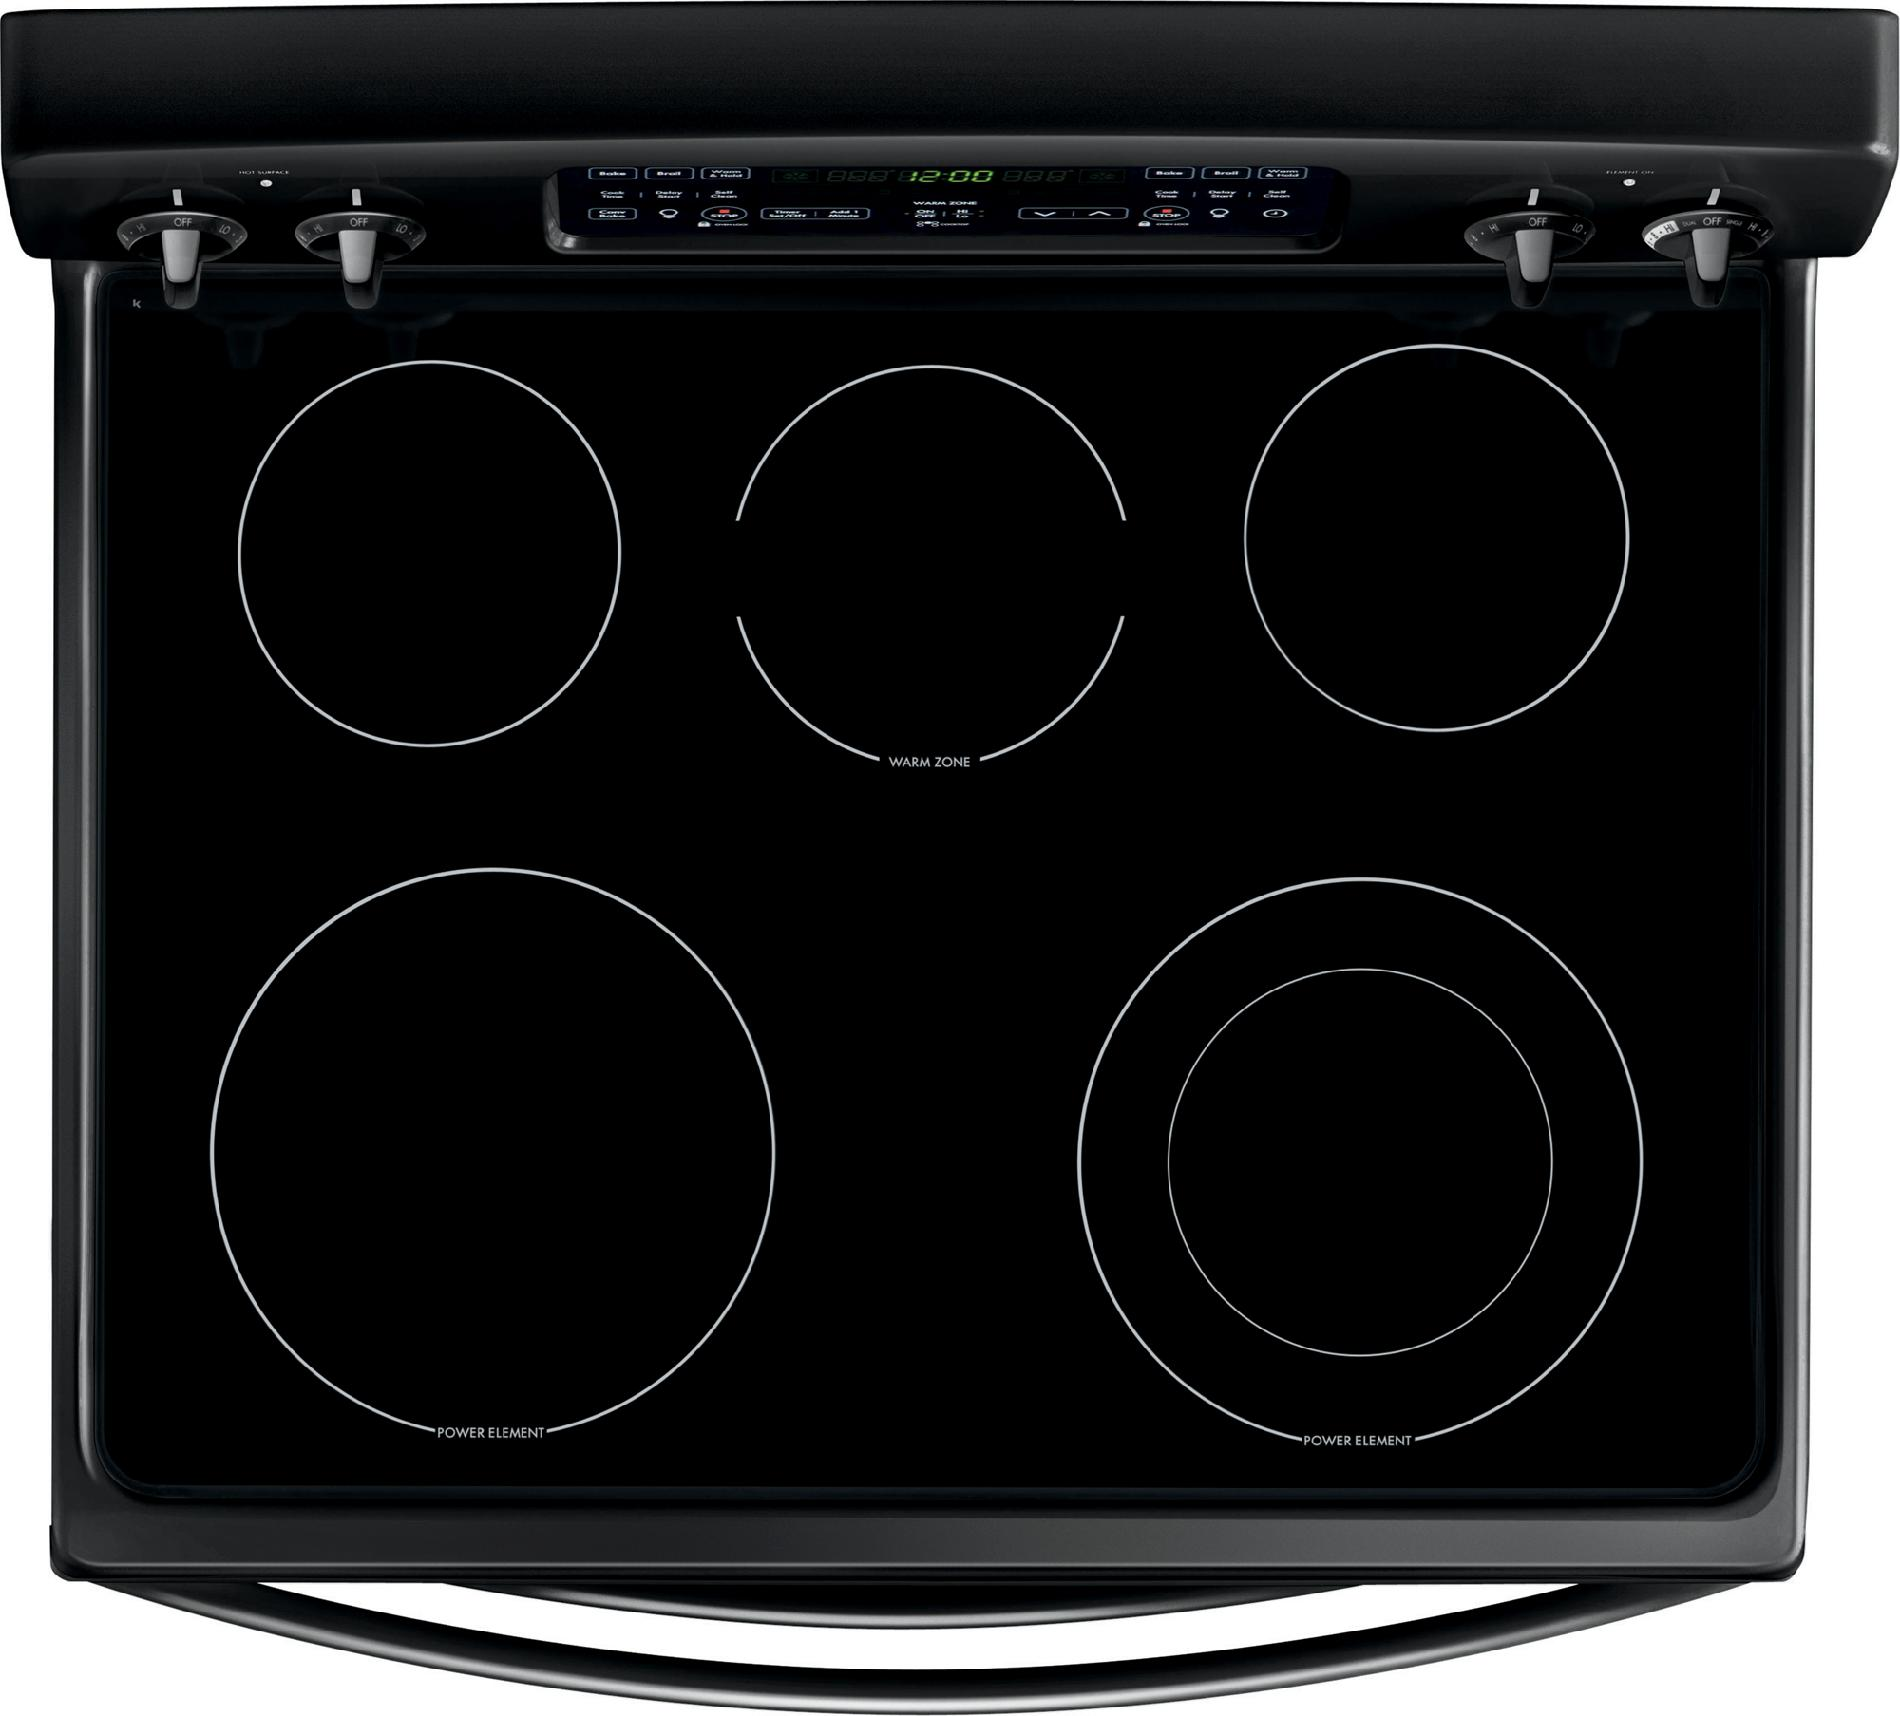 Kenmore 7.0 cu. ft. Double-Oven Electric Range w/ Convection - Black